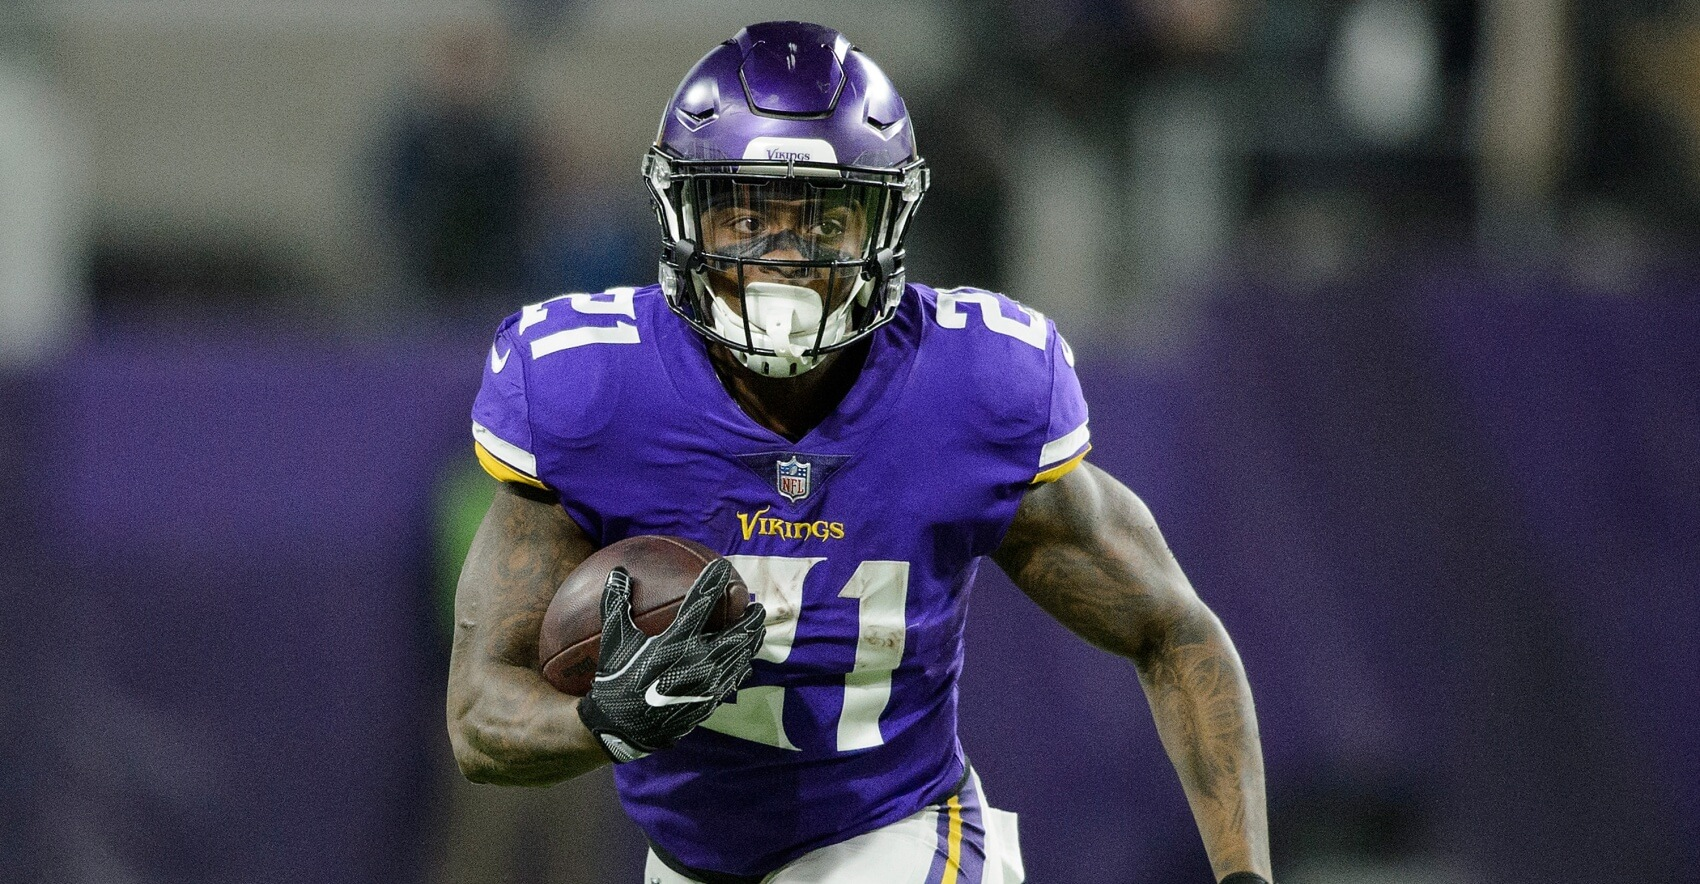 Fantasy Football: Free Agency Winners and Losers